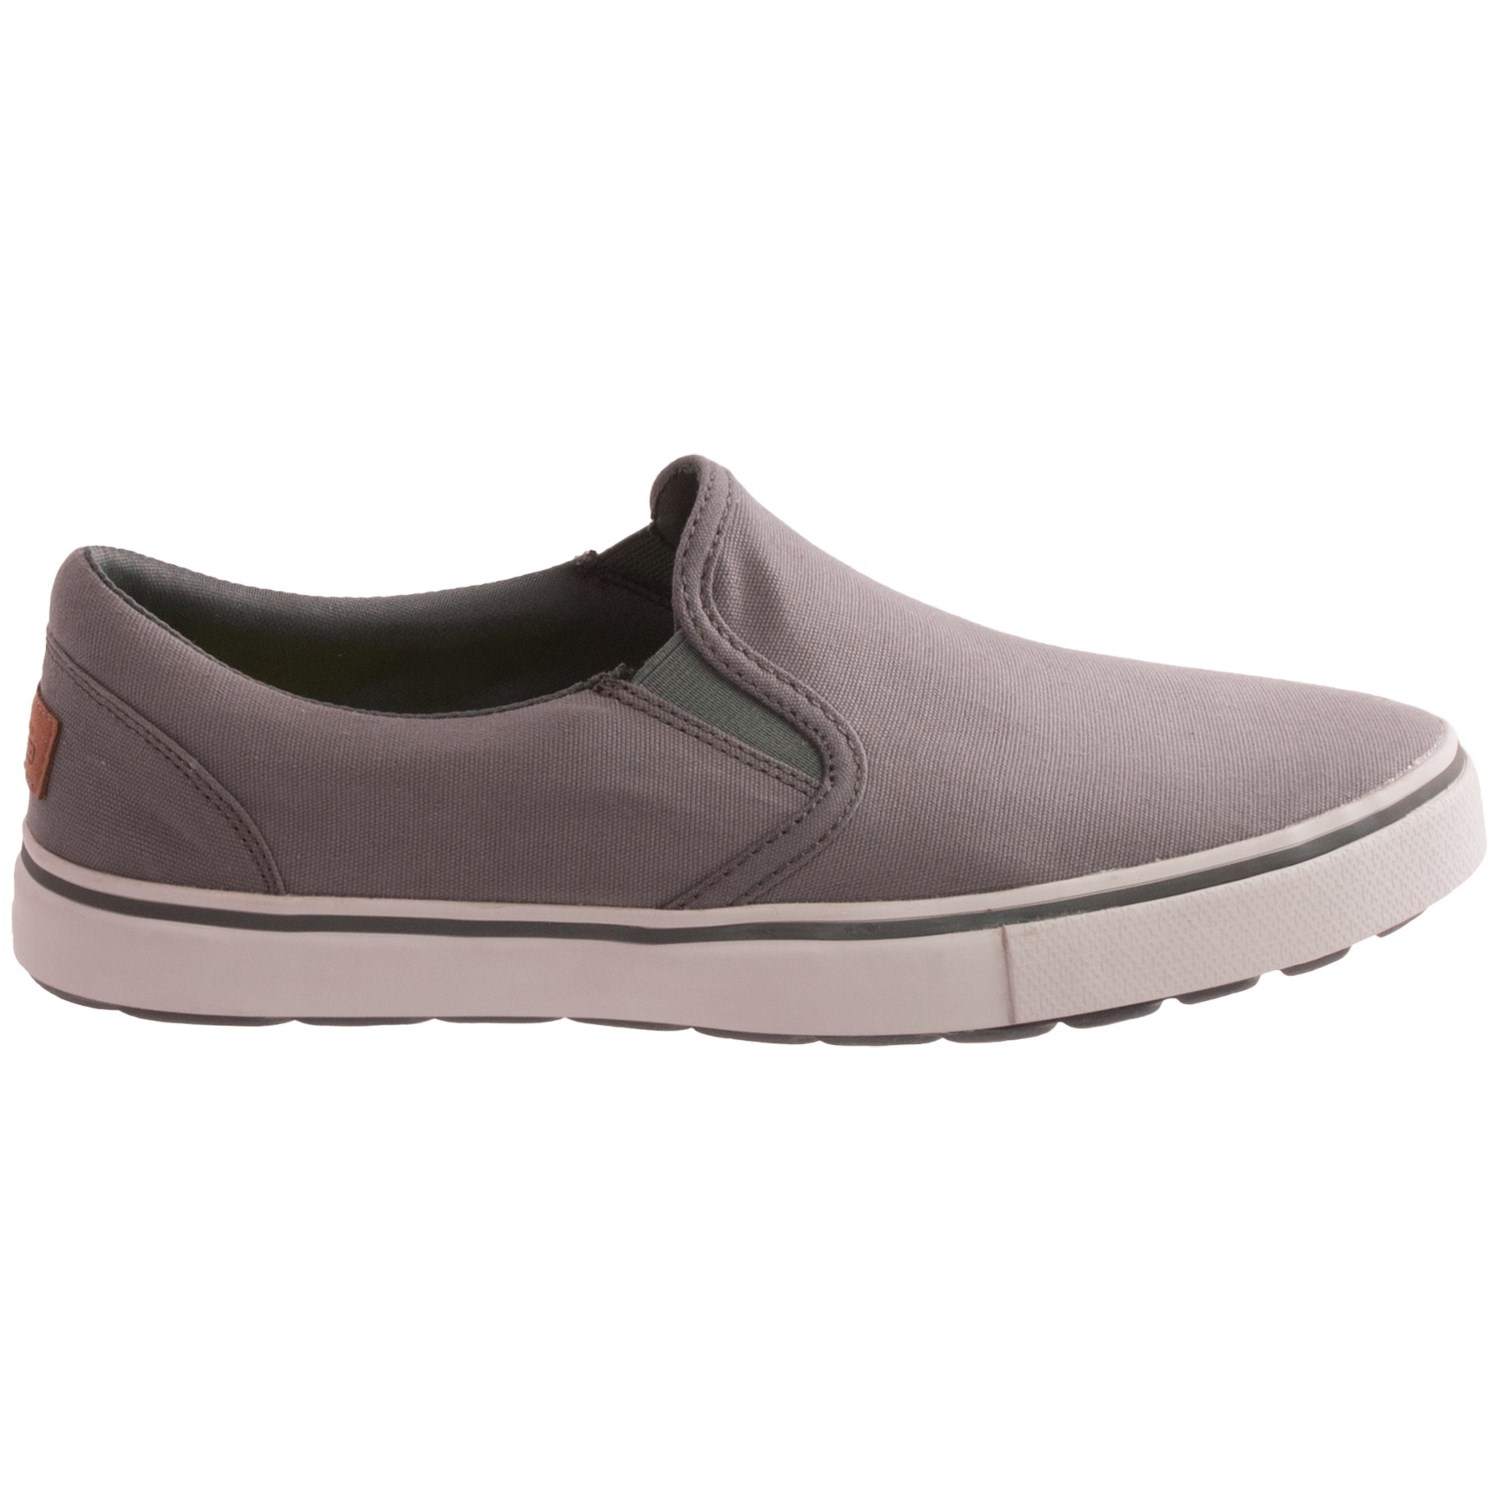 skechers on the go vulc shred shoes for 9518p save 40